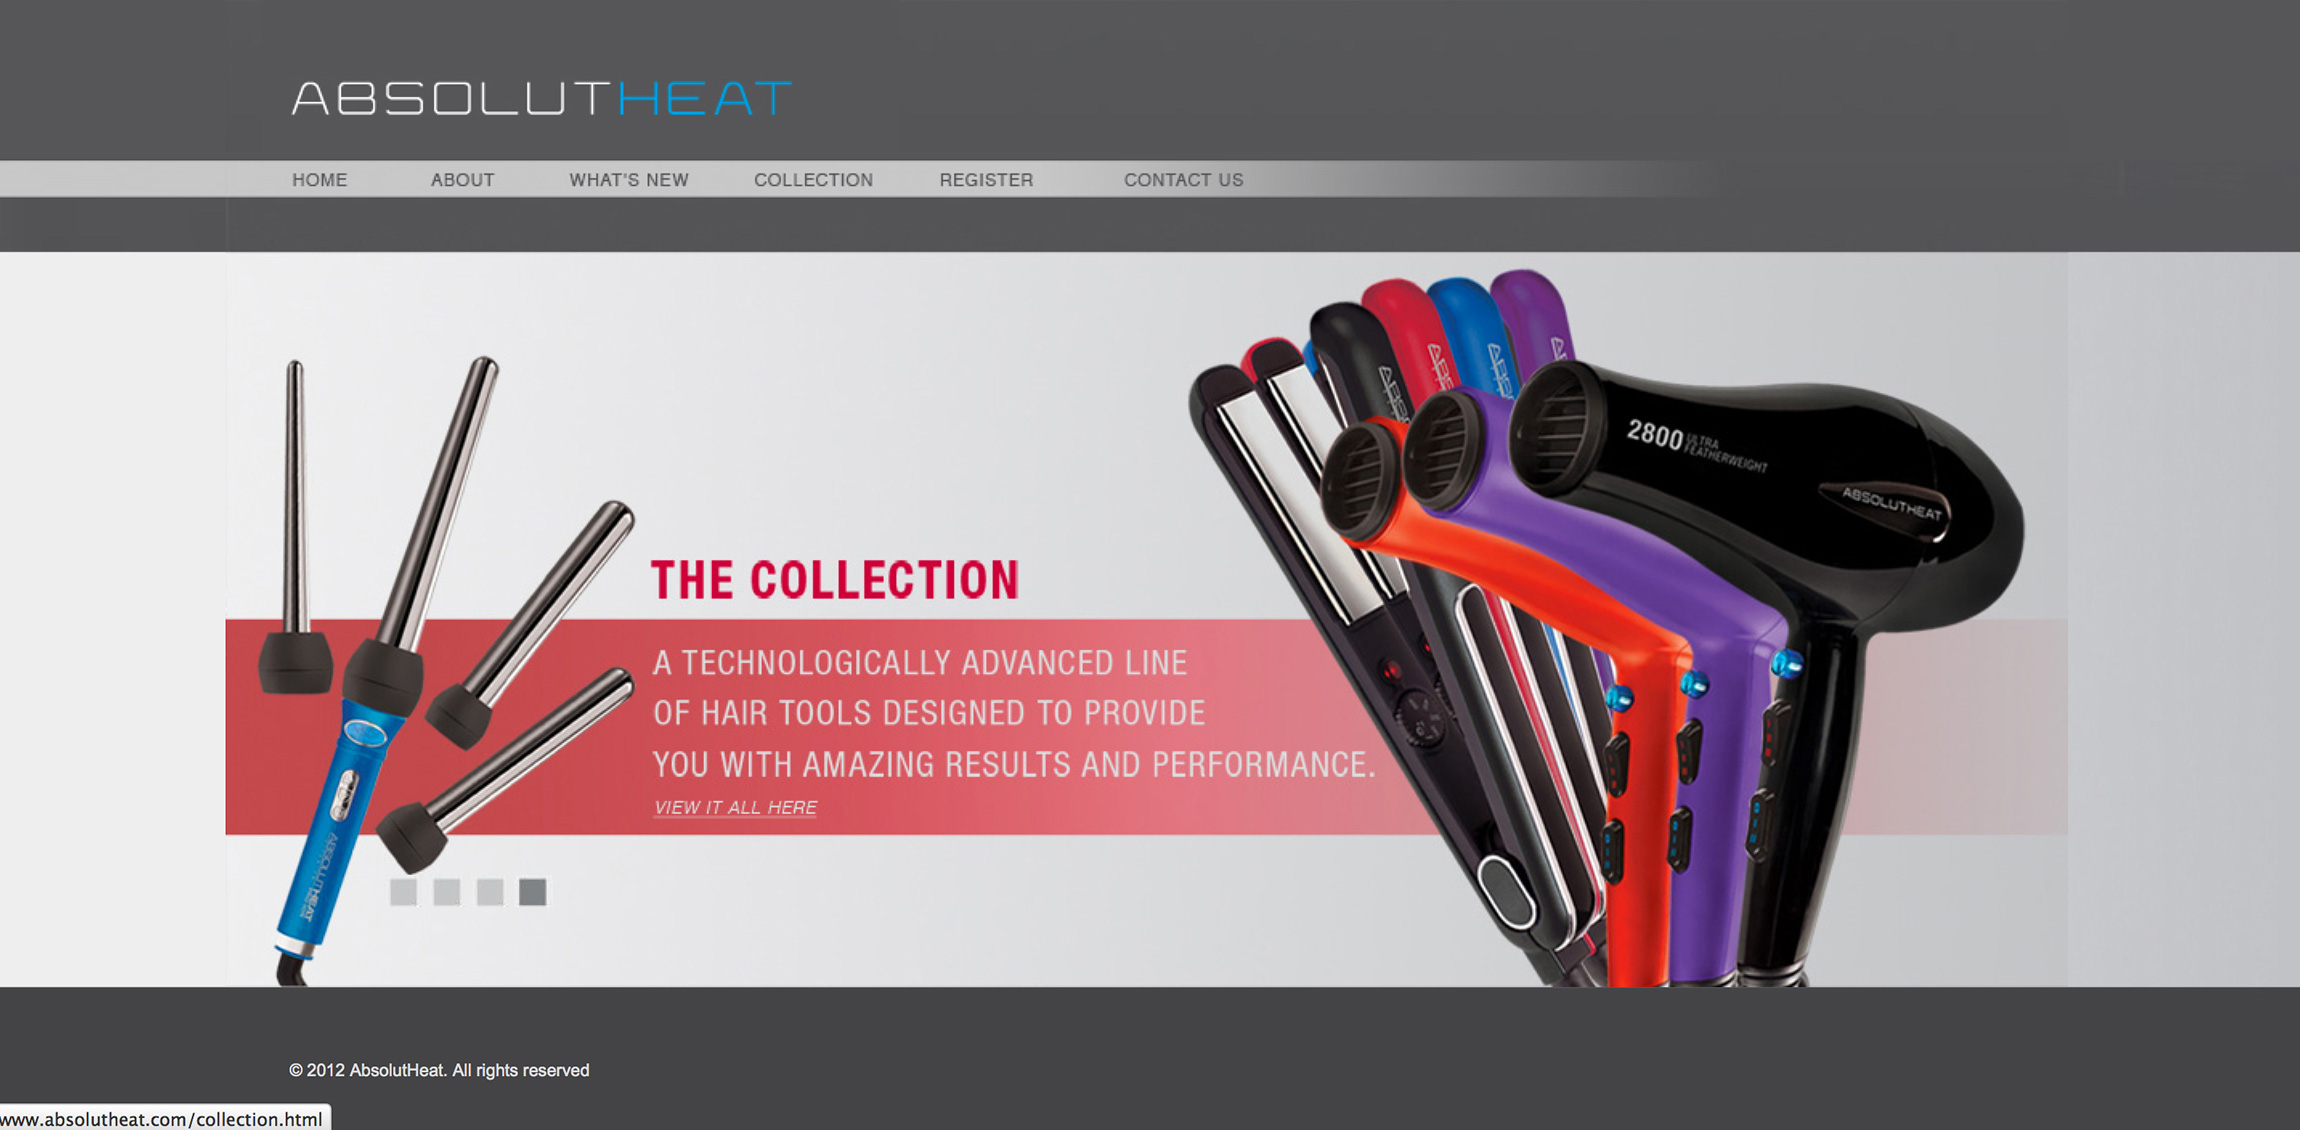 AbsolutHeat website homepage redesign showcasing a collection of hot tools in header.